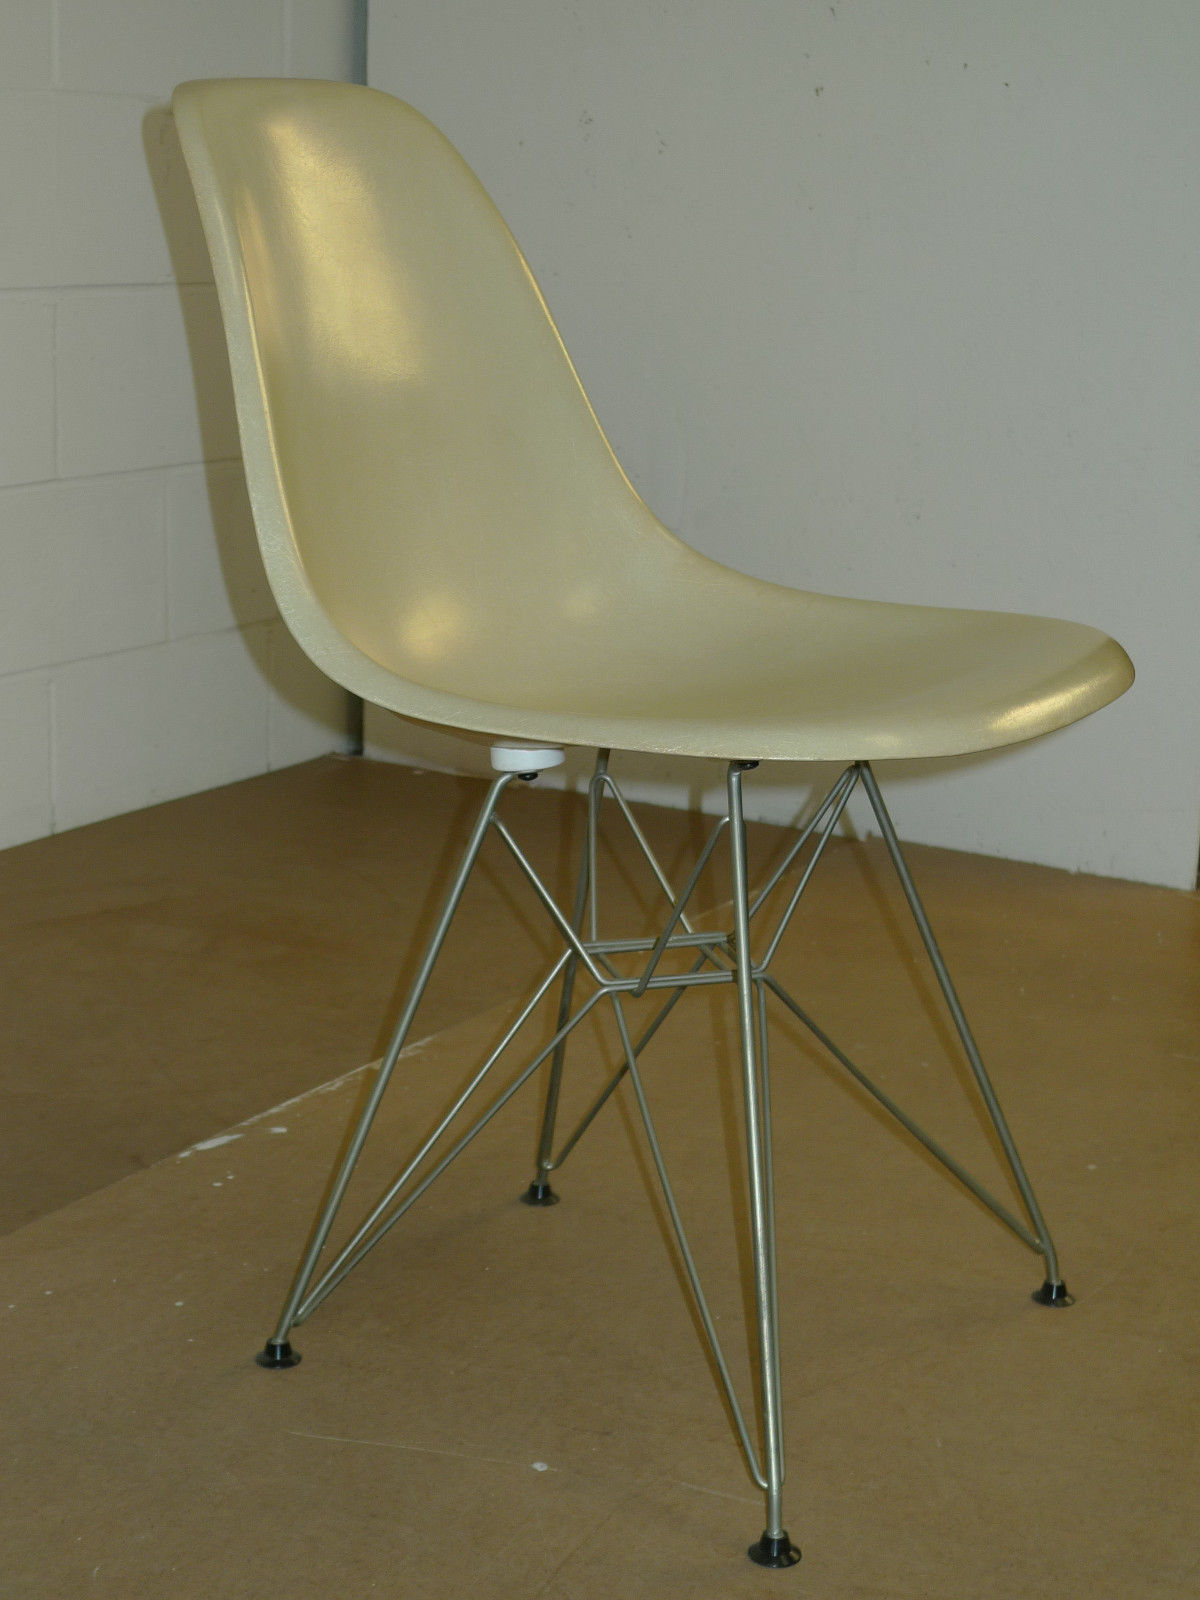 60s Herman Miller Eames Shell Chairs Vintage White